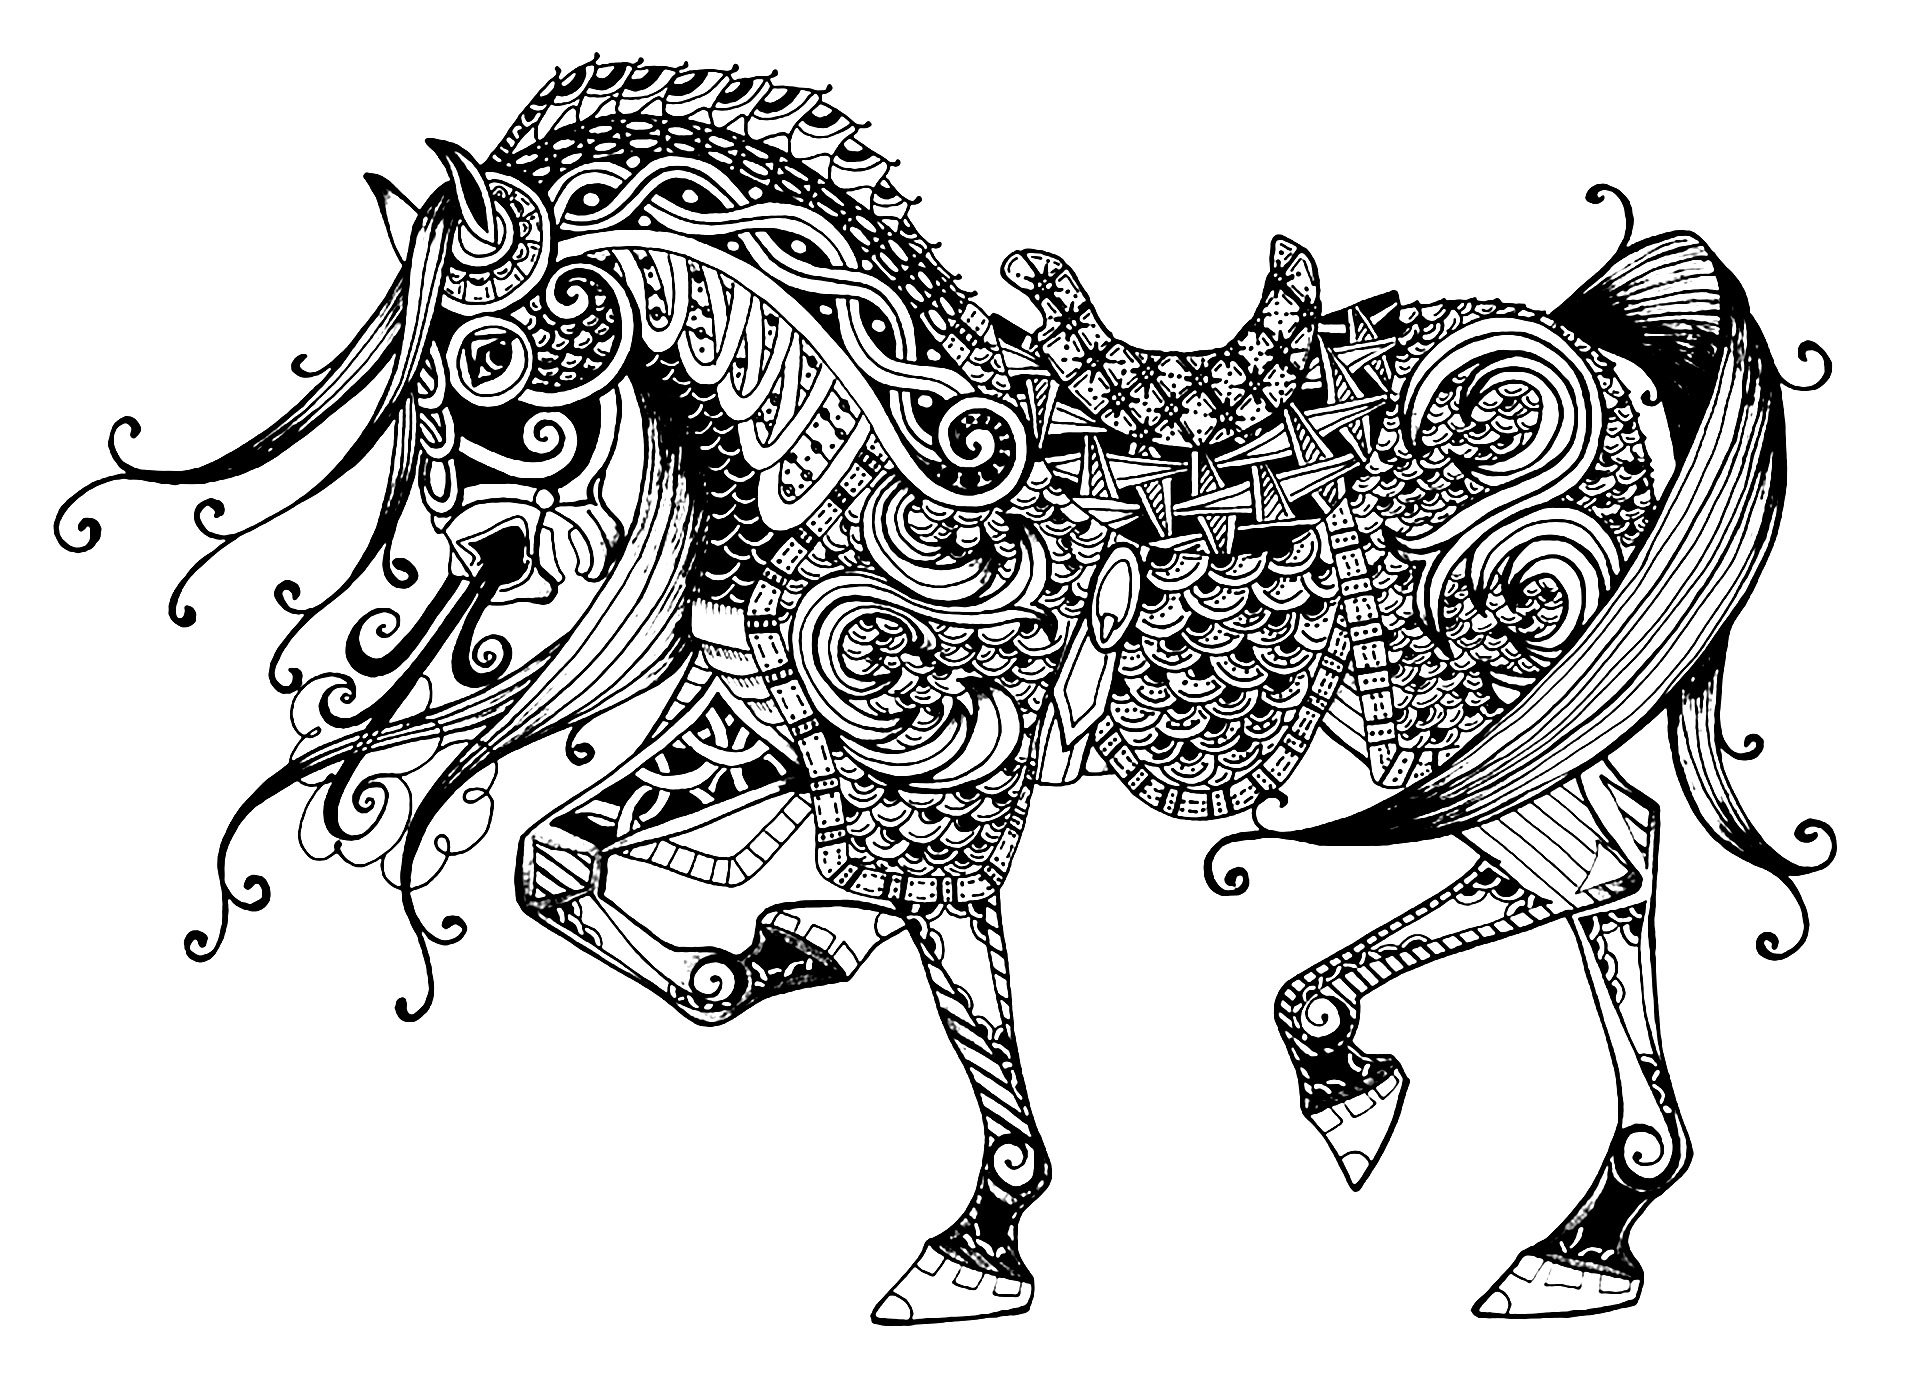 kids horse coloring pages horse free to color for kids trotting horse with complex coloring horse pages kids